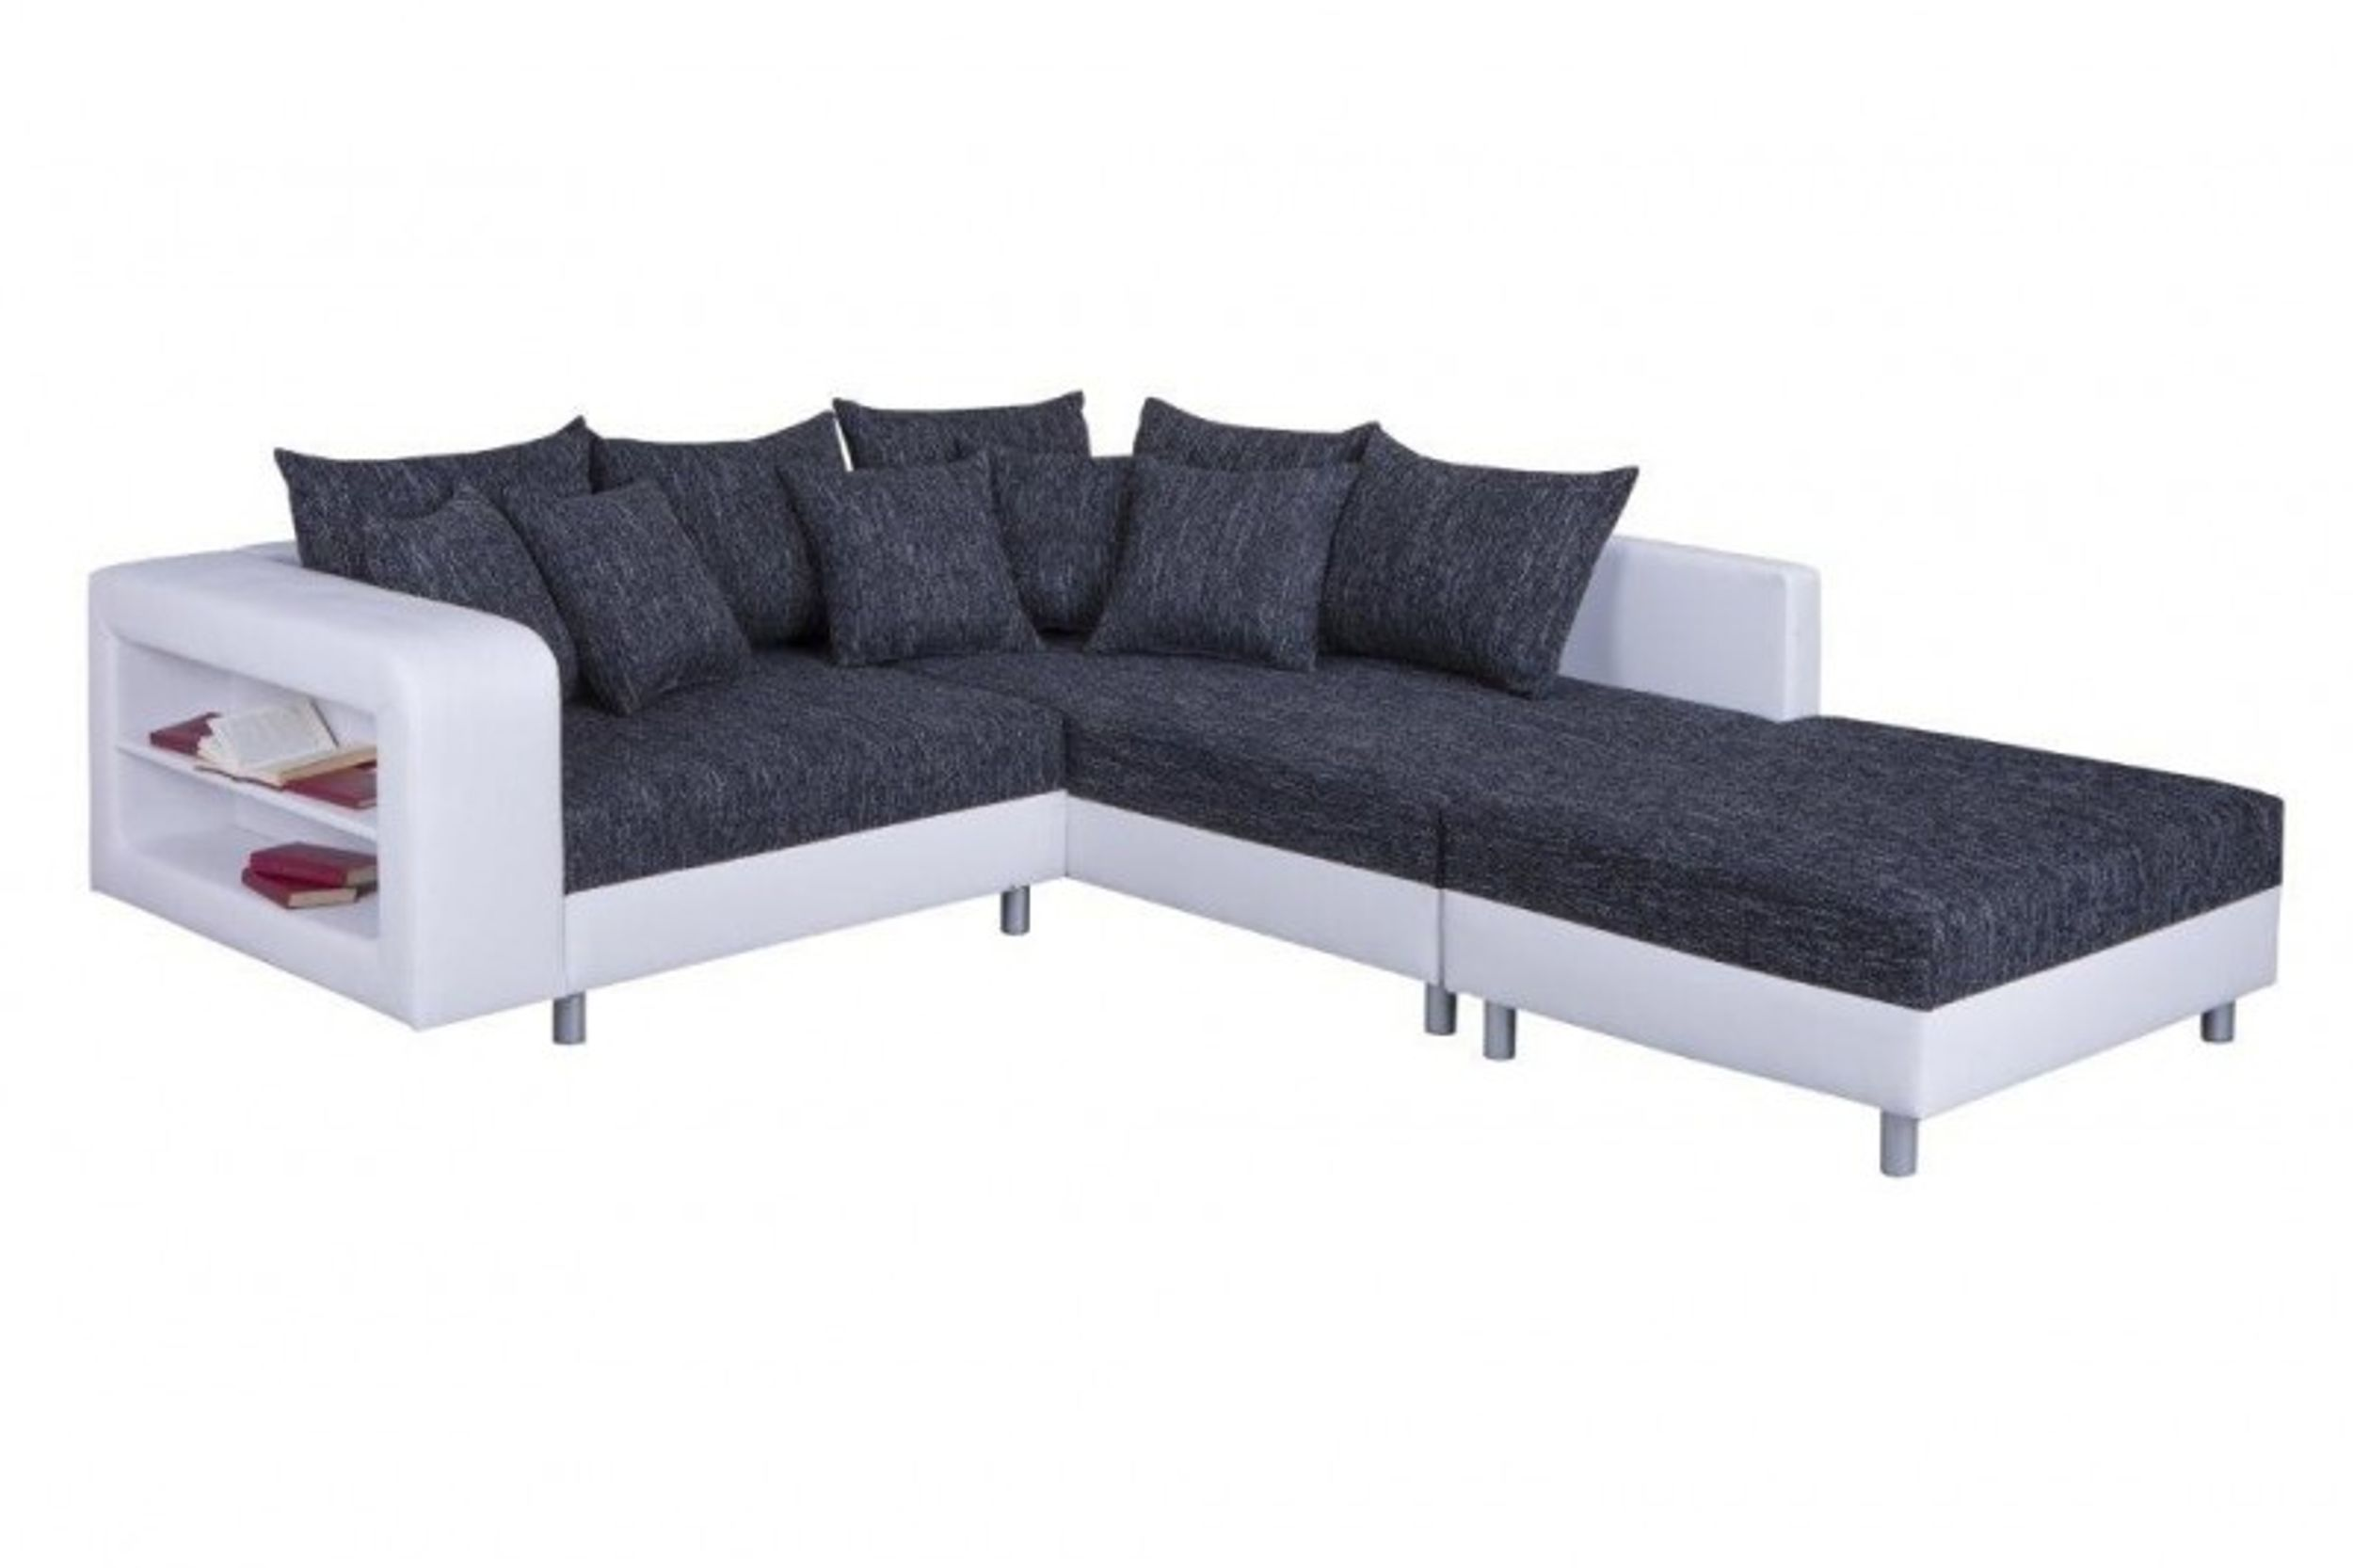 modernes sofa couch ecksofa eckcouch in schwarz weiss mit hocker dresden r polsterm bel sofa. Black Bedroom Furniture Sets. Home Design Ideas